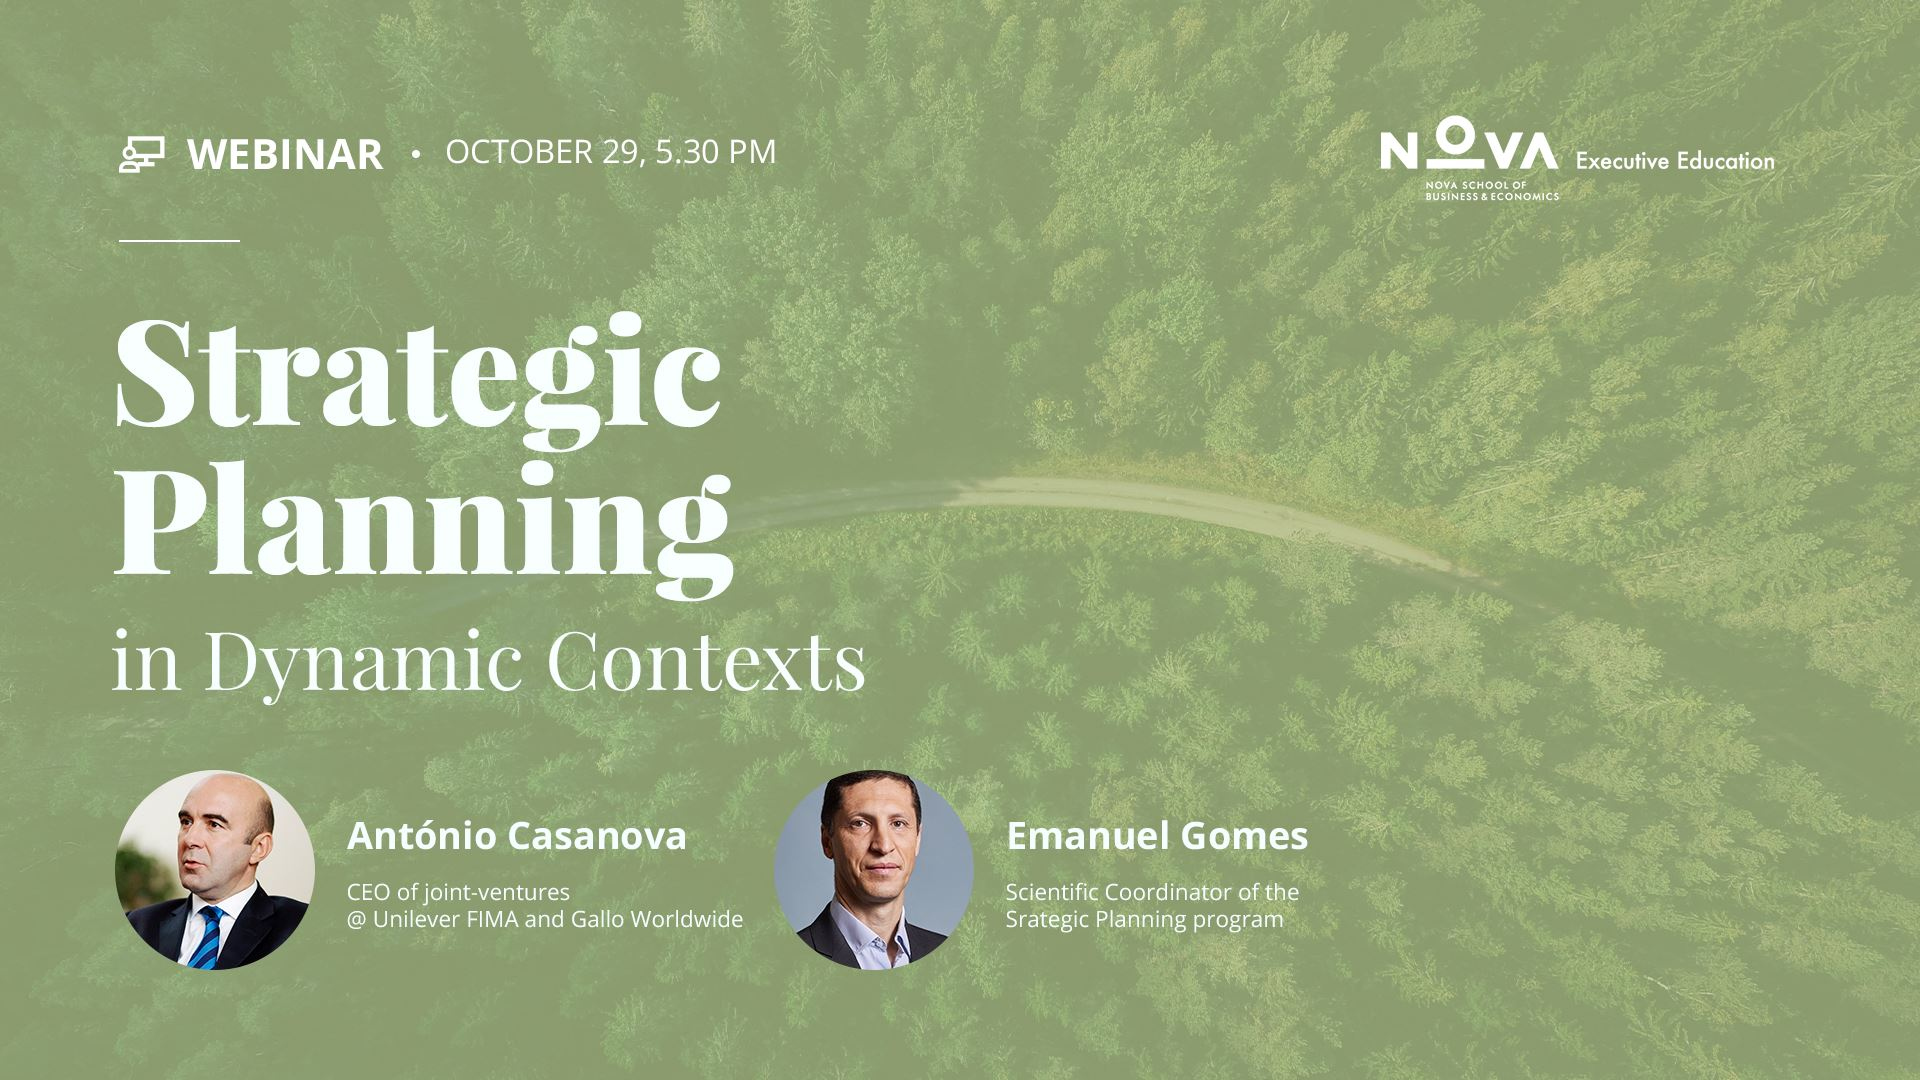 Strategic Planning in Dynamic Contexts